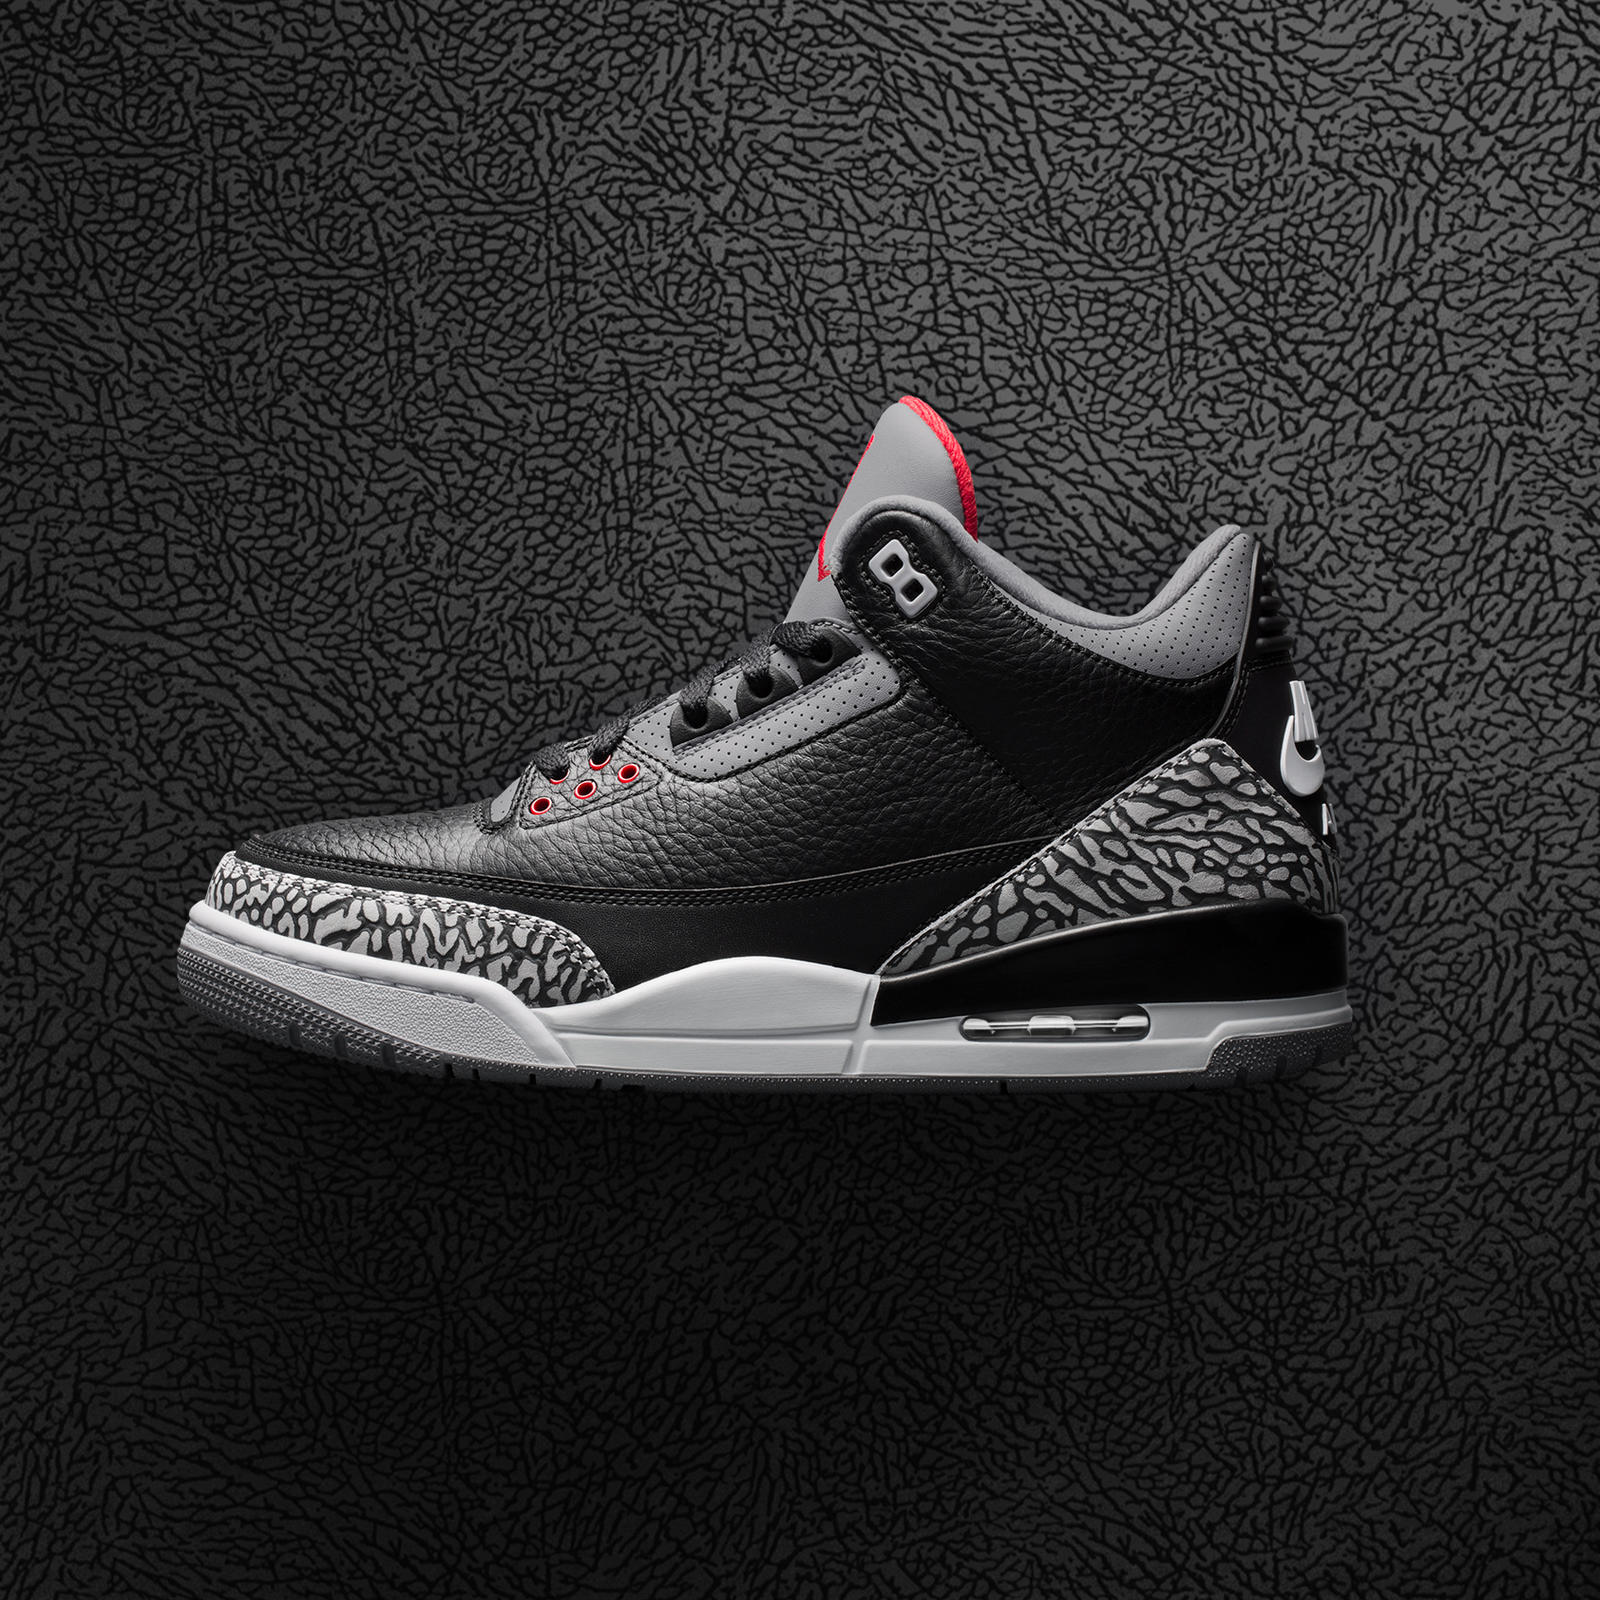 check out b87d7 c9a43 Introducing the First-Ever Jordan Brand NBA All-Star Edition Uniforms 45. Air  Jordan III Black Cement.